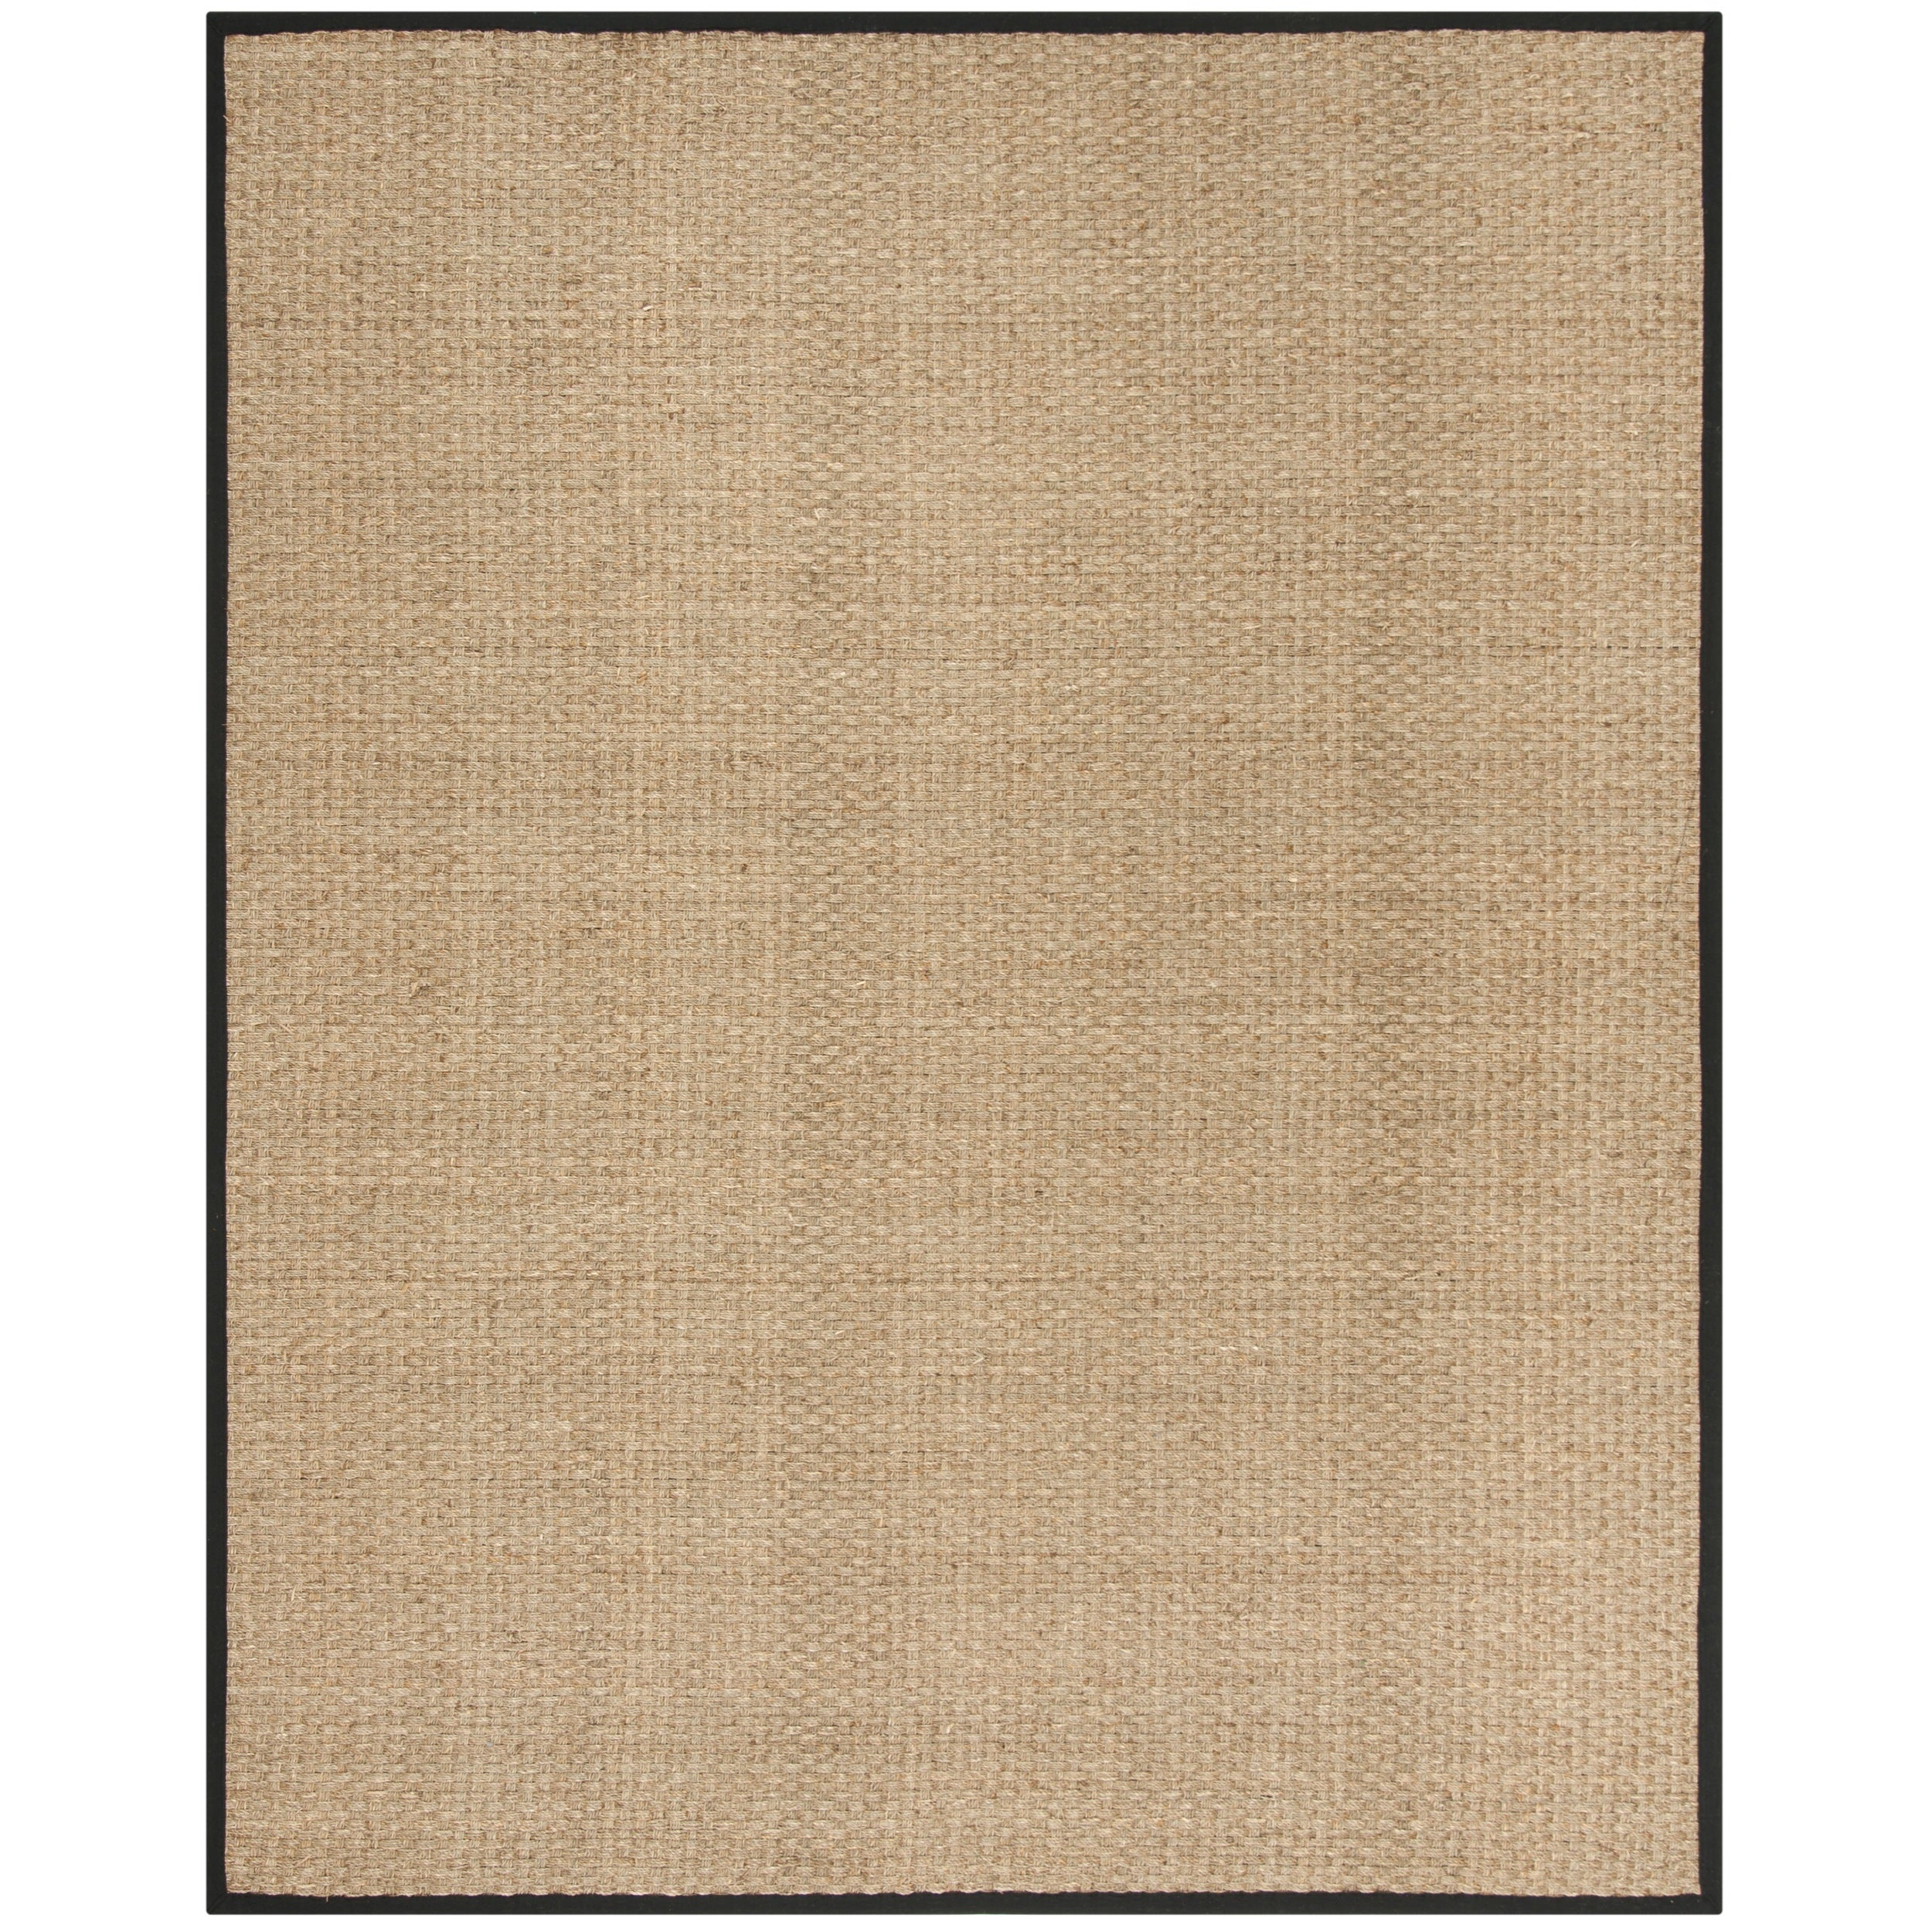 Safavieh Casual Natural Fiber And Black Border Seagrass Rug 8 X 10